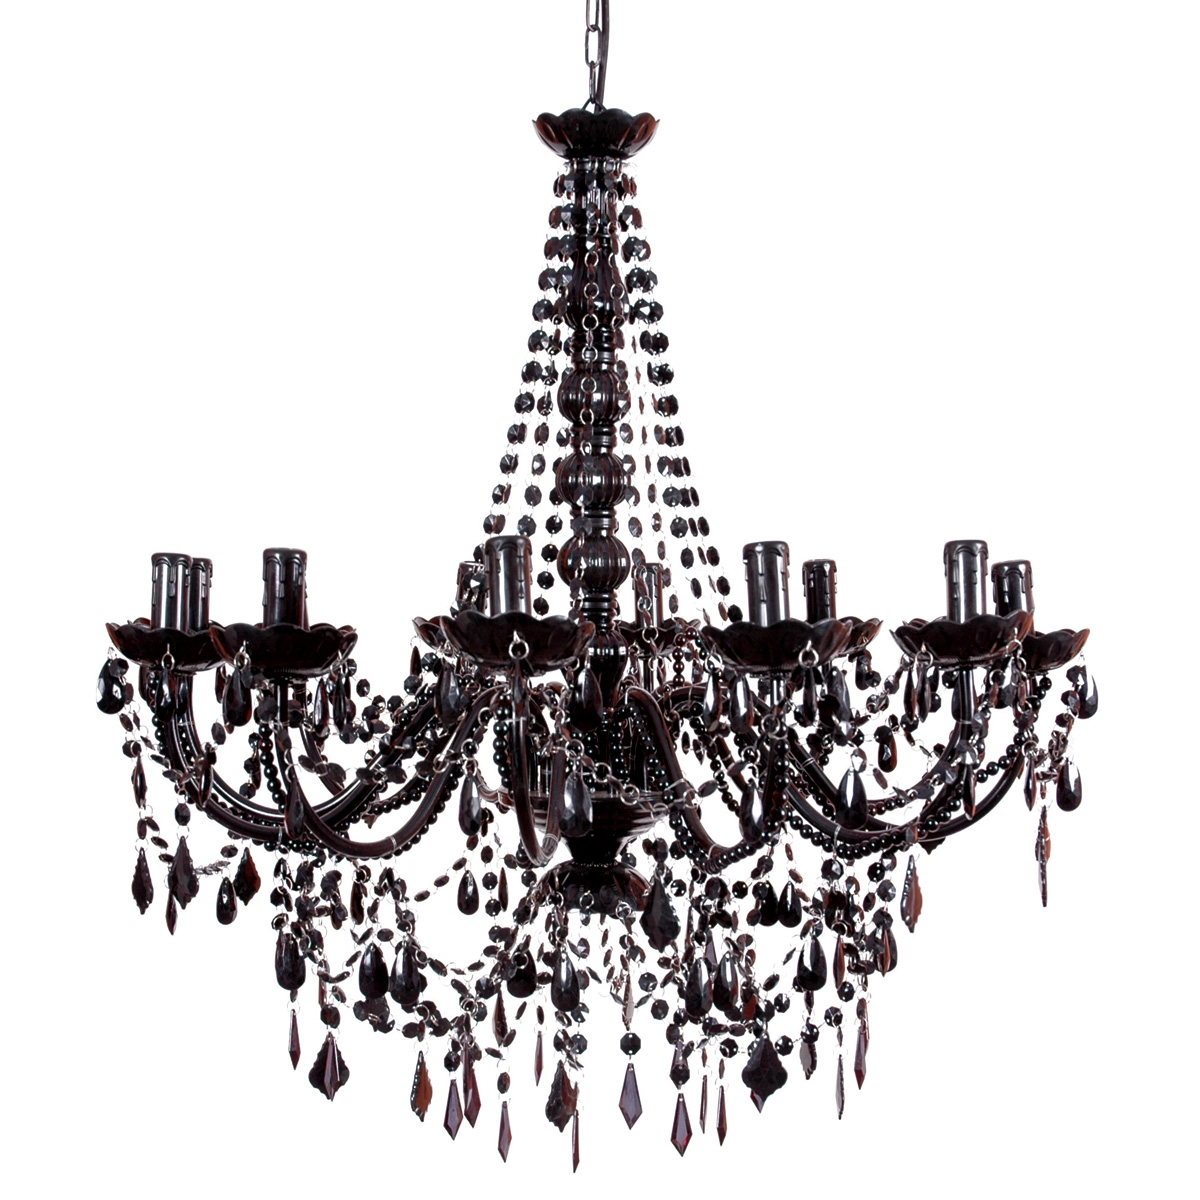 53 Chandelier Lighting Modern Vintage Crystal Chandelier Lighting Throughout Large Black Chandelier (#1 of 12)